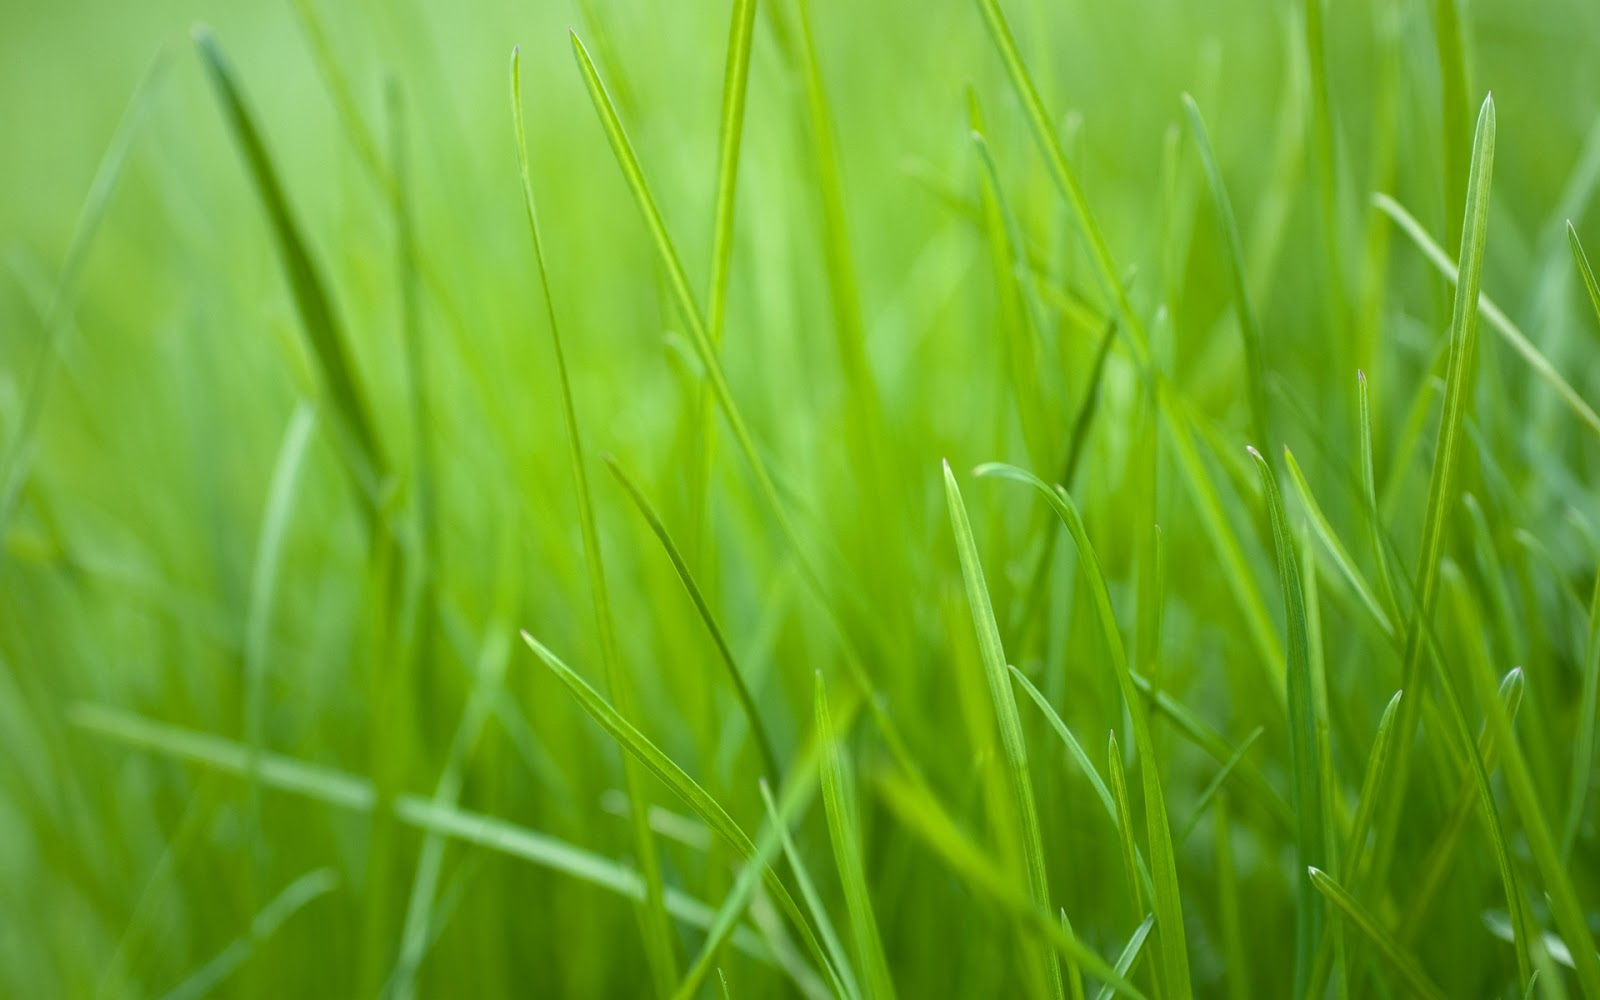 HD Wallpapers of Grass Art | Nice Pics Gallery